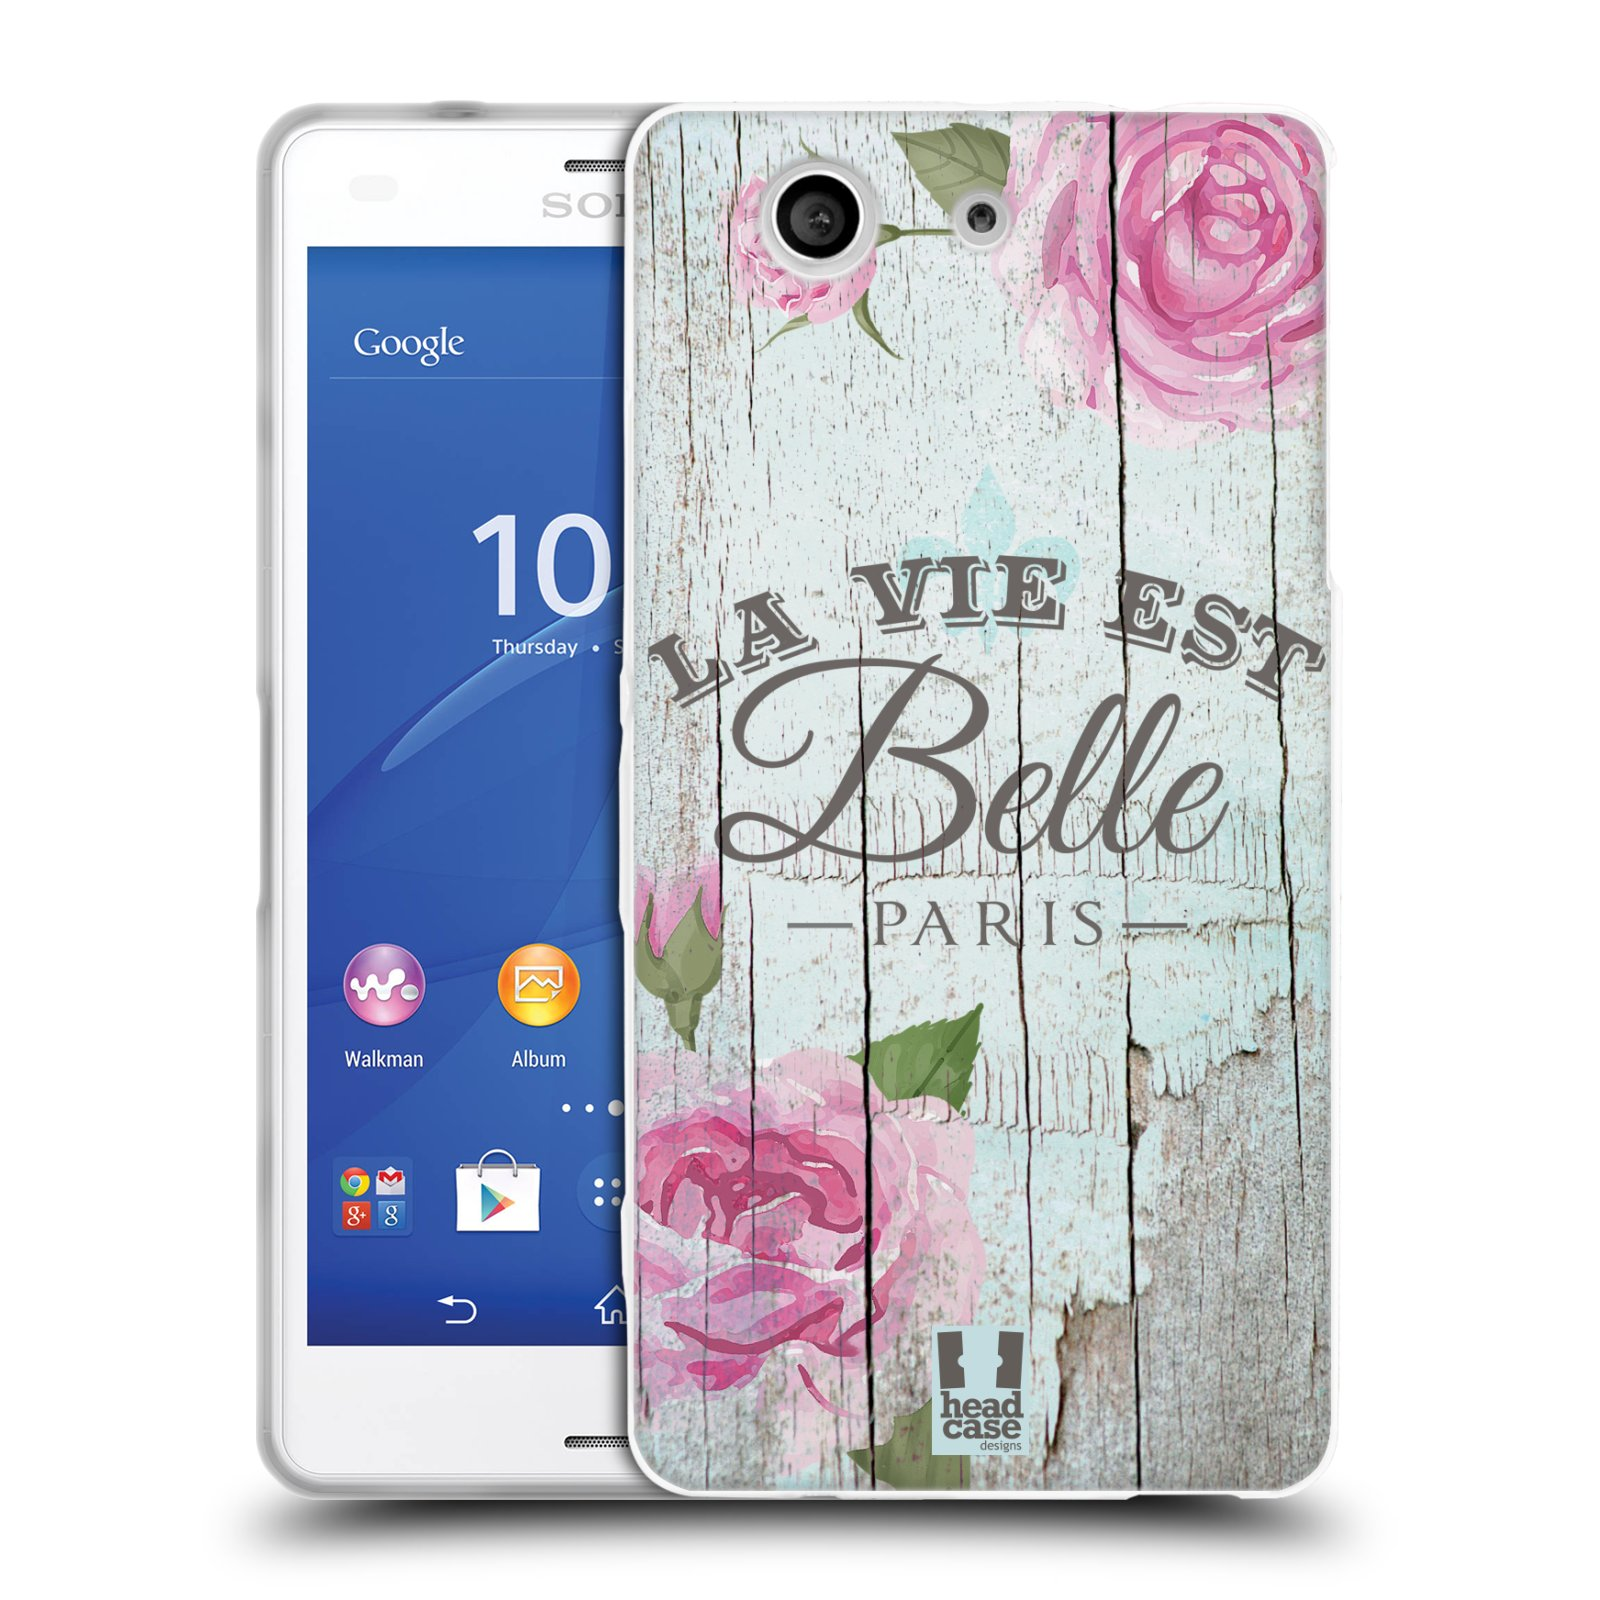 Silikonové pouzdro na mobil Sony Xperia Z3 Compact D5803 HEAD CASE LIFE IN THE COUNTRY BELLE